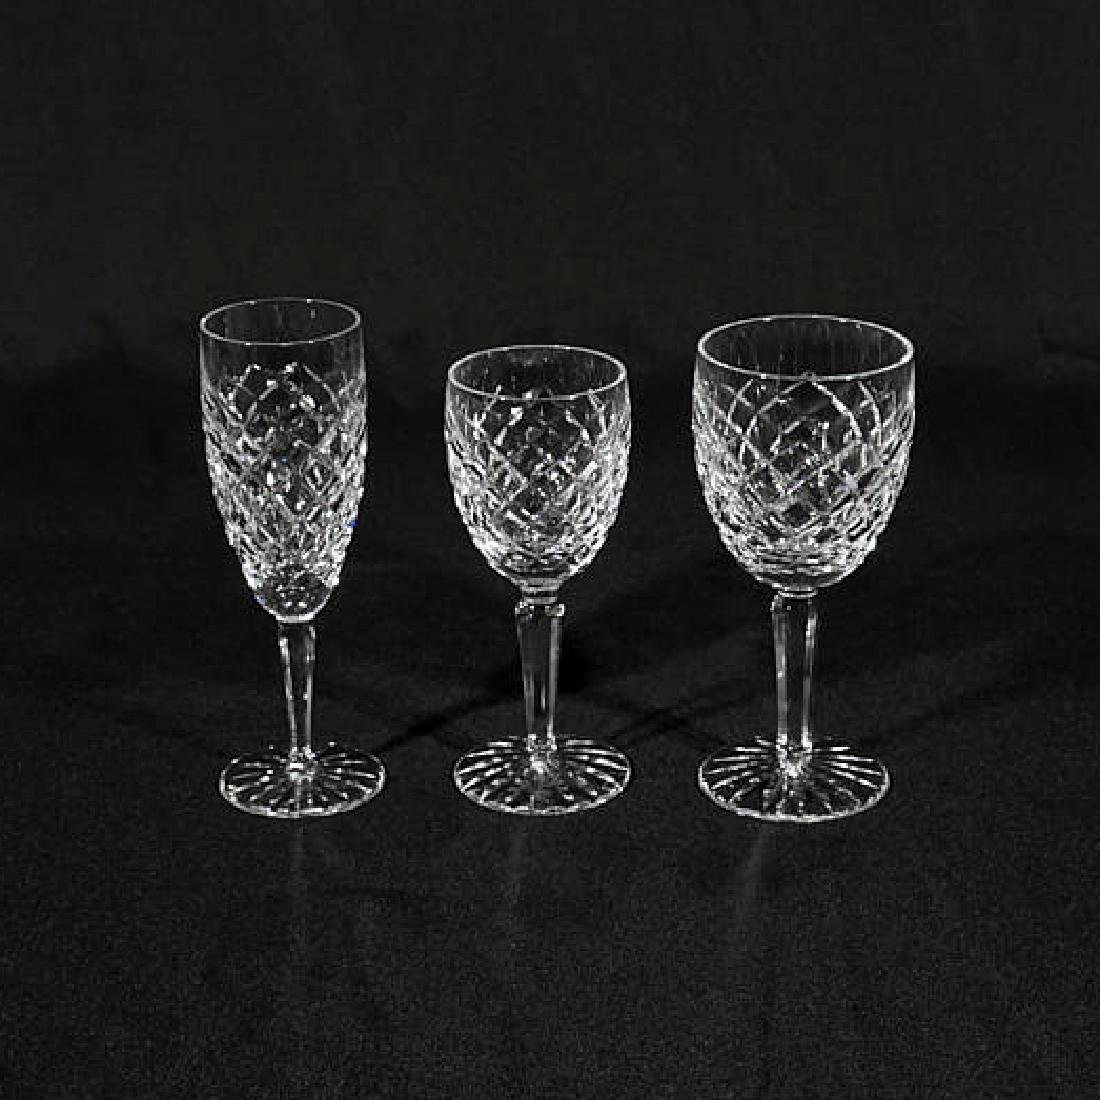 18-Piece Set of Waterford Cut Crystal Glasses - 2